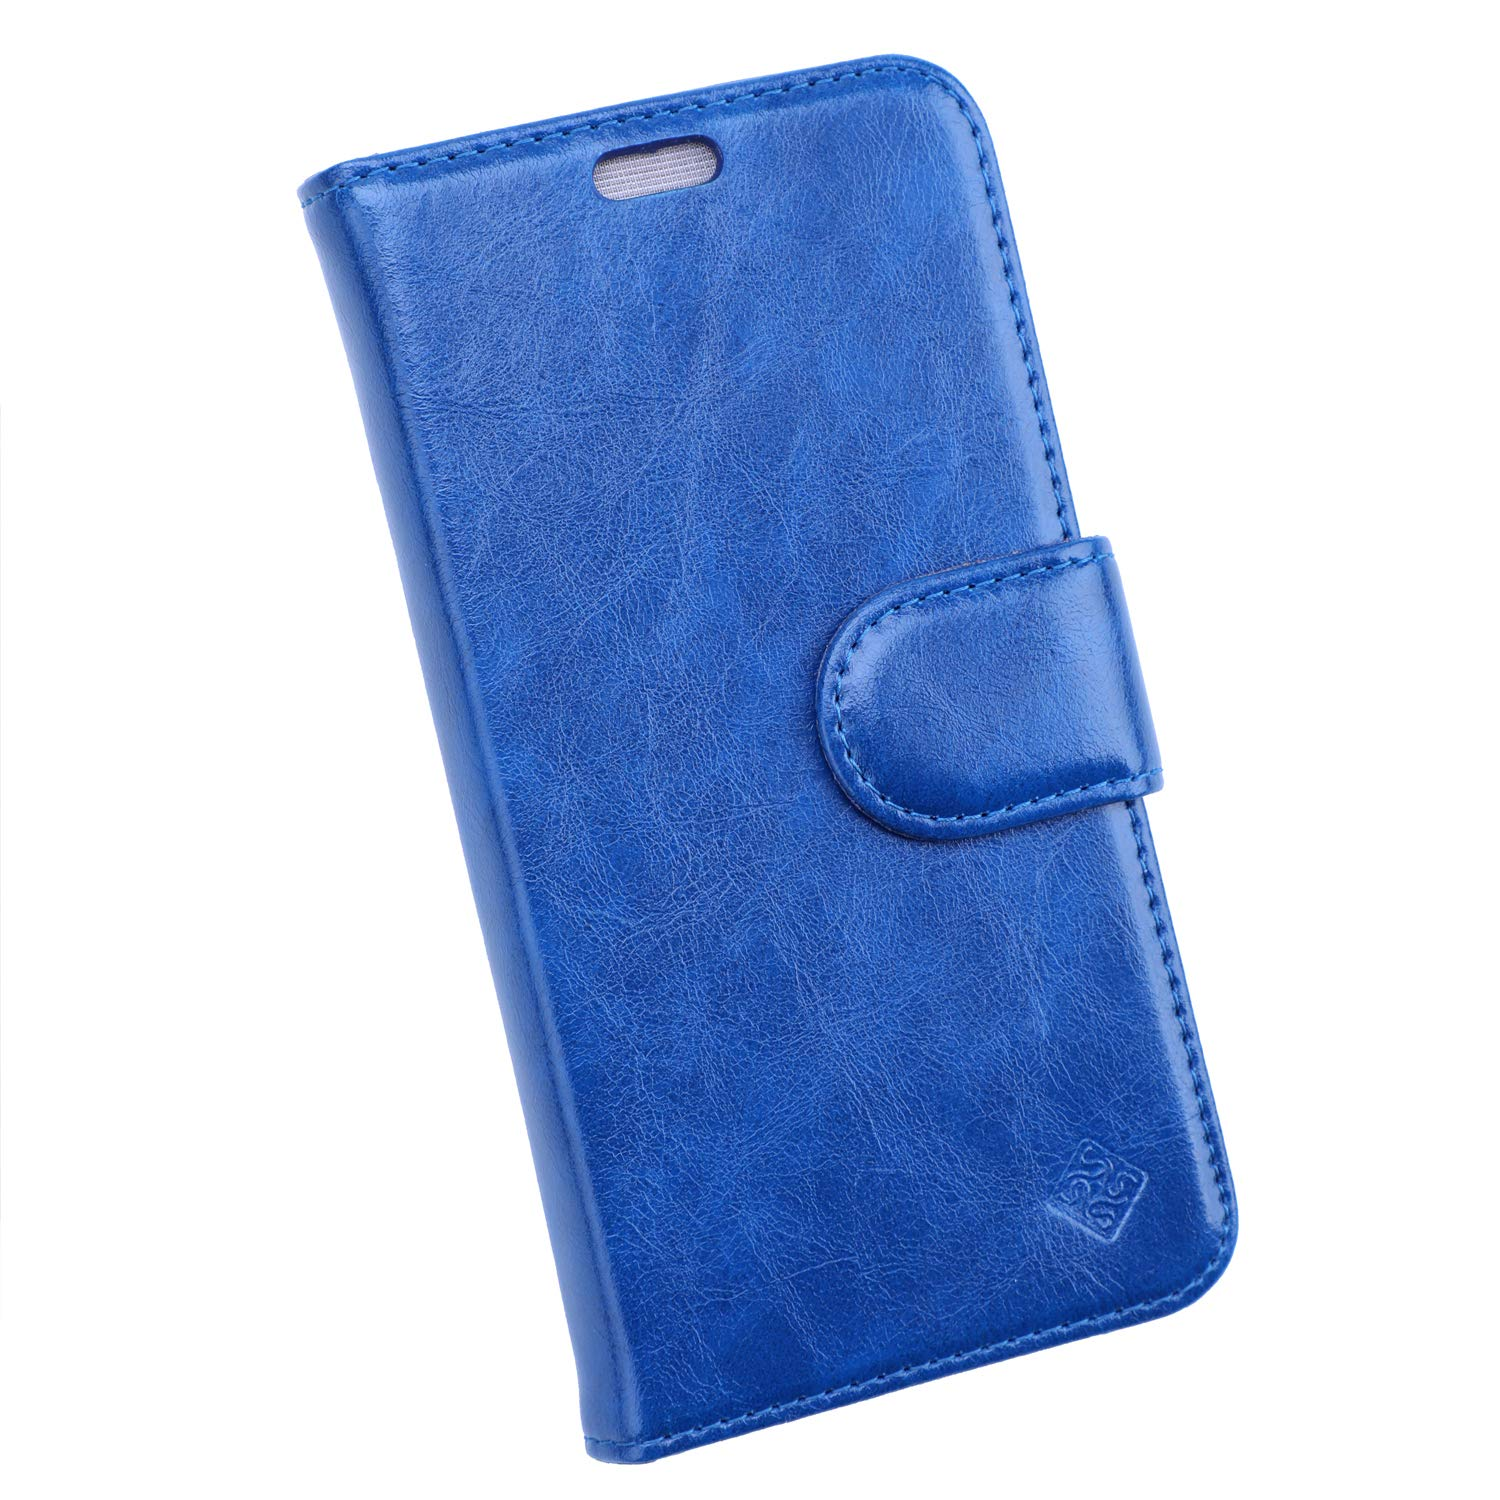 Sanxir Anti-Radiation Case, EMF and RF Protection Wallet Case Against Drops and Bump for iPhone Xs and iPhone X with A New Classes of Nanoscale Graphene-Based Materials, with RFID Protection. (Blue)